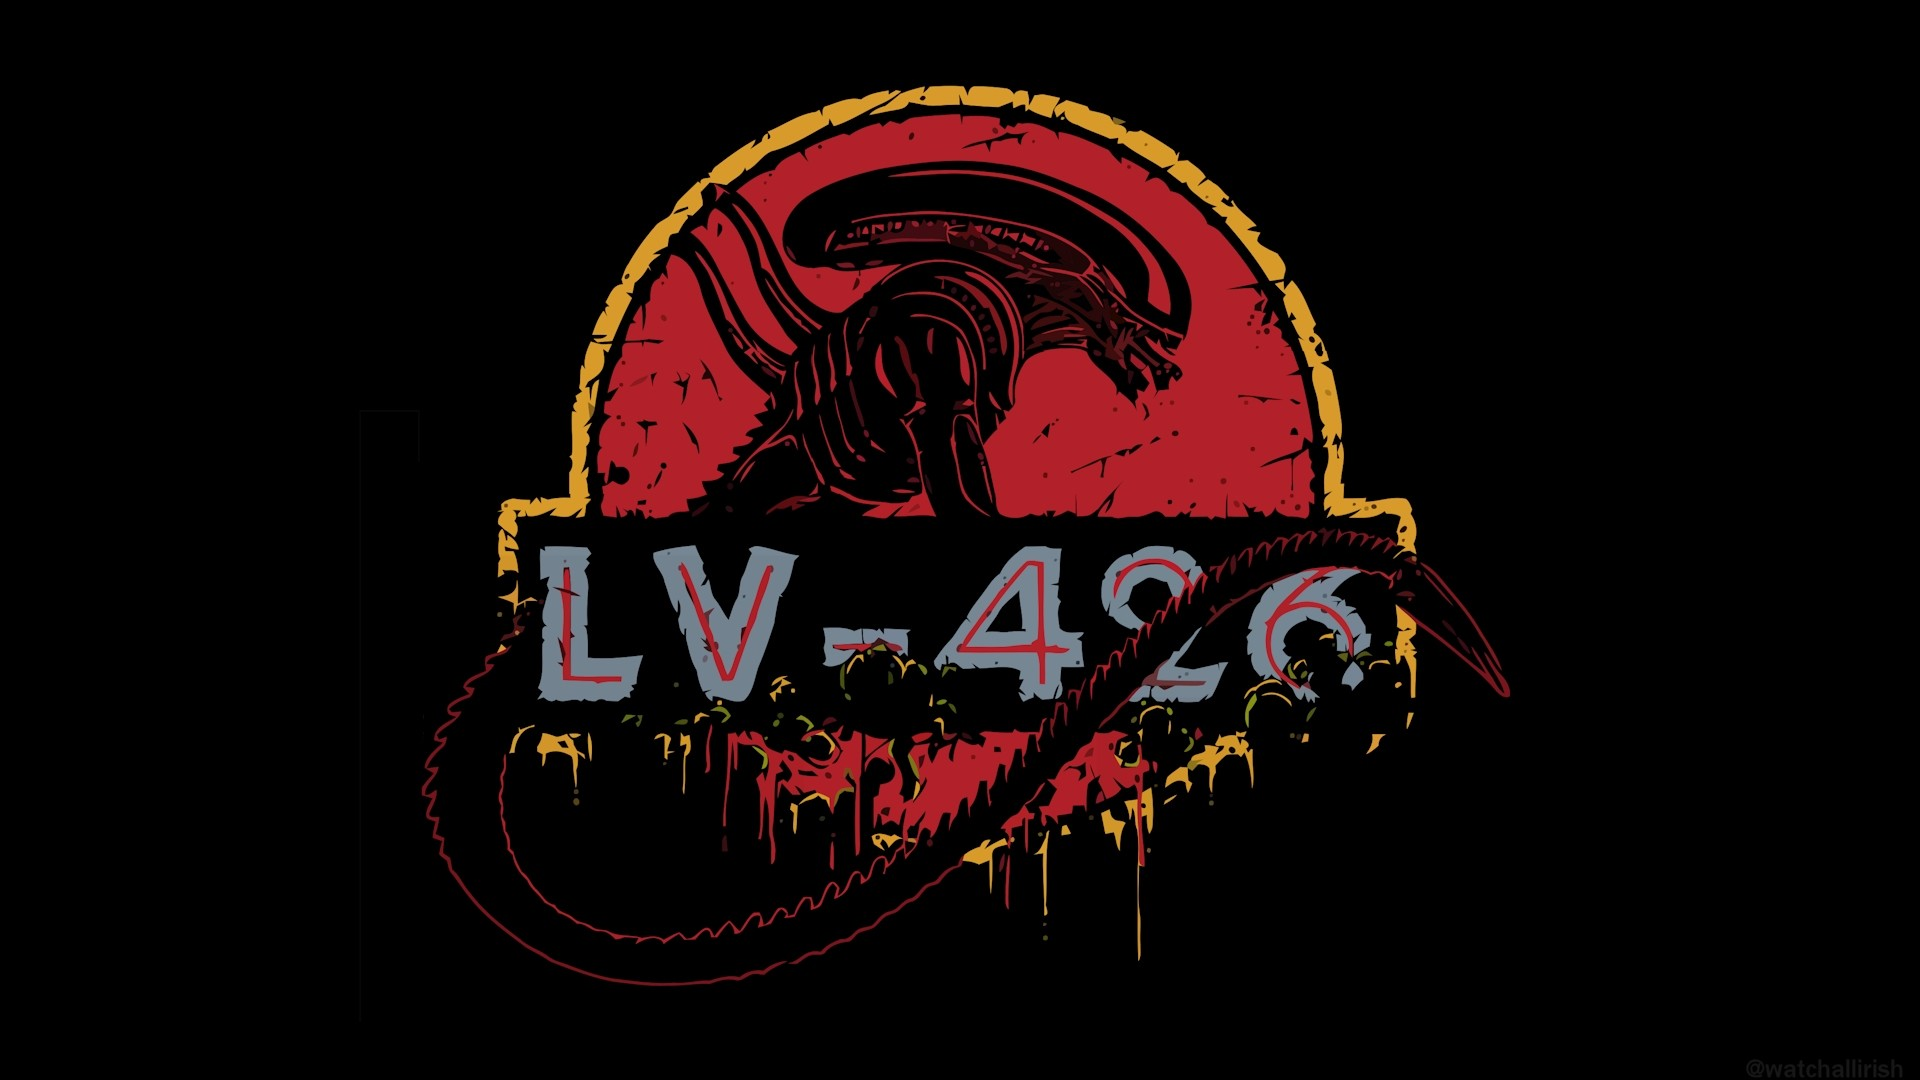 Alien Wallpapers And Screensavers (71+ Images